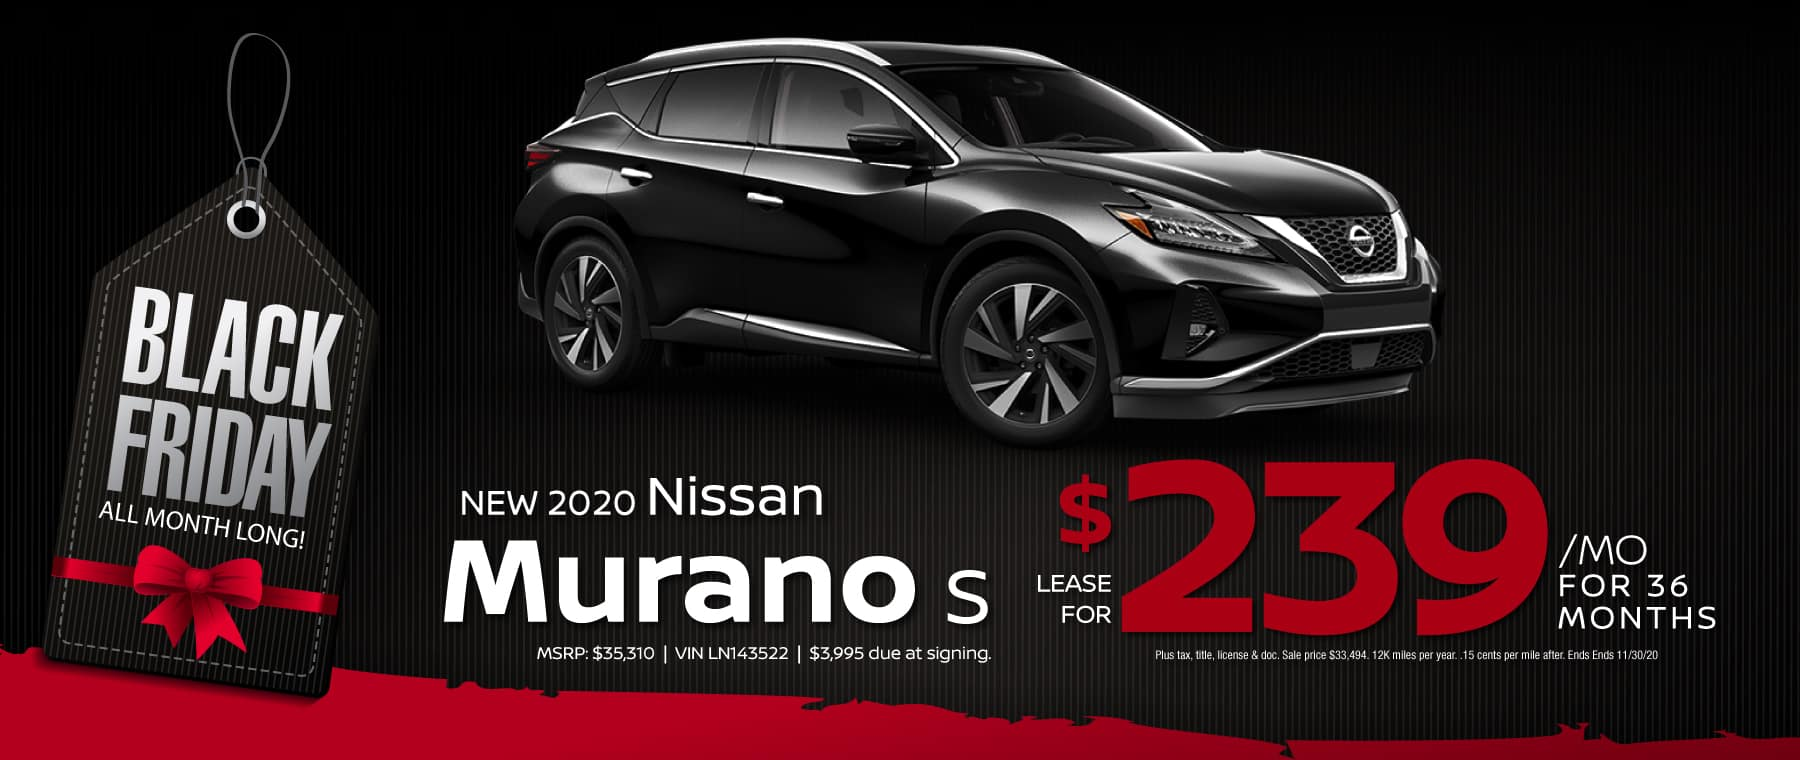 HNSC110220_lease_1800x760_Murano